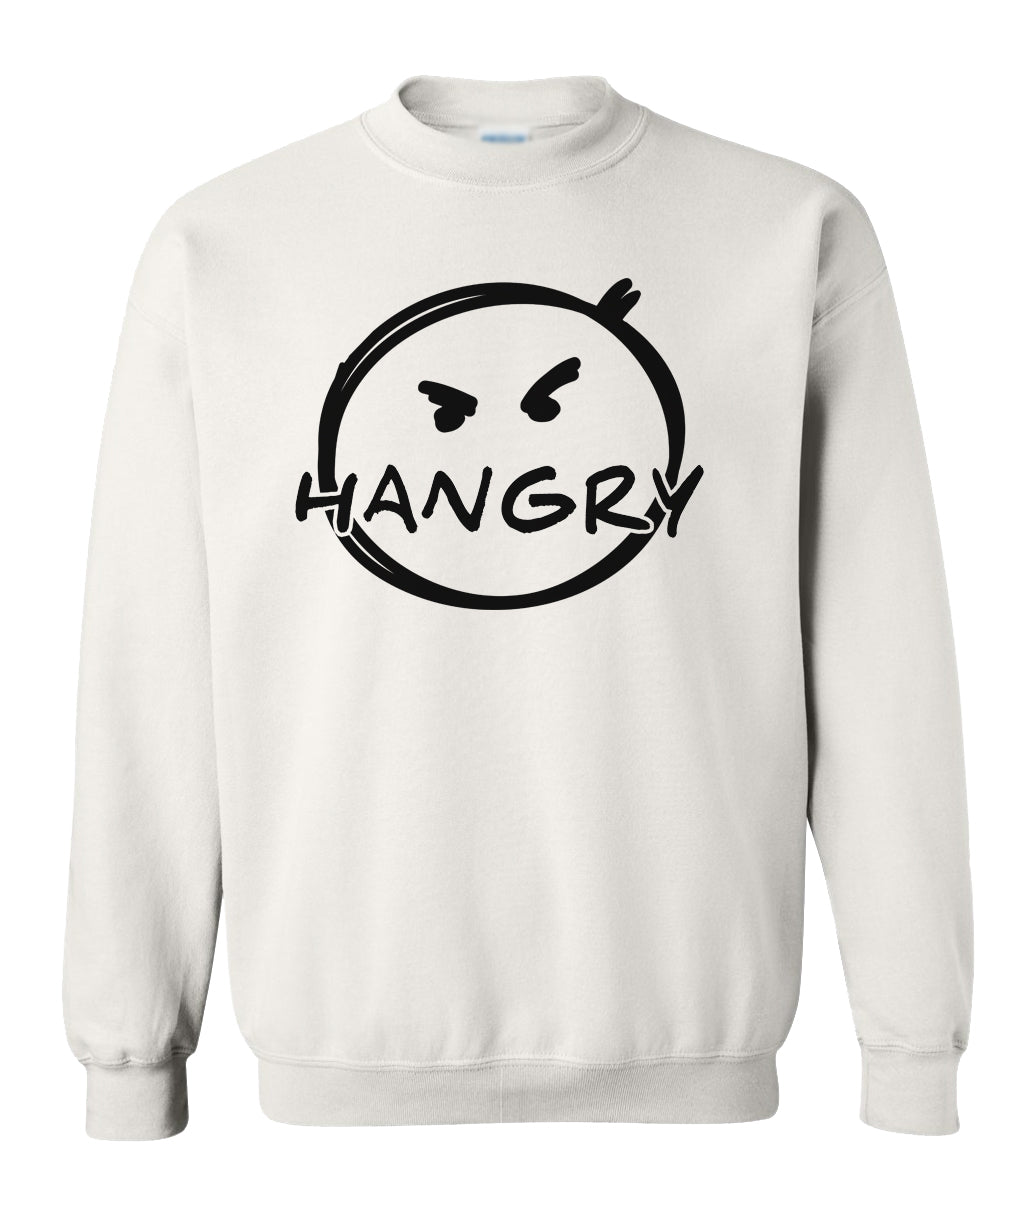 white hangry sweatshirt